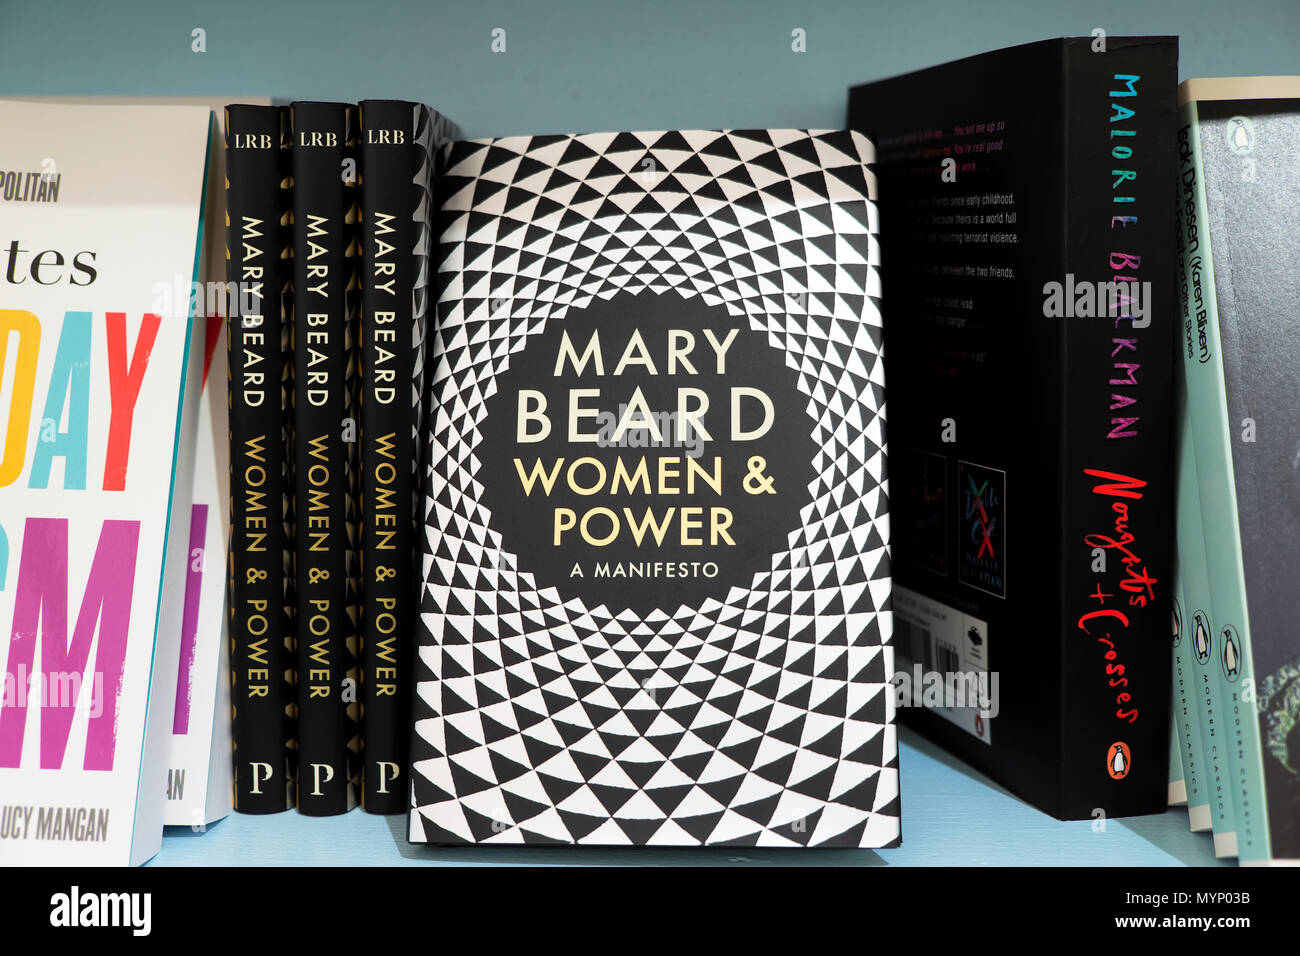 Mary Beard bookcover of  'Women & Power A Manifesto' on a bookshelf  at the Hay Festival 2018 bookstore in Hay-on-Wye UK   KATHY DEWITT - Stock Image